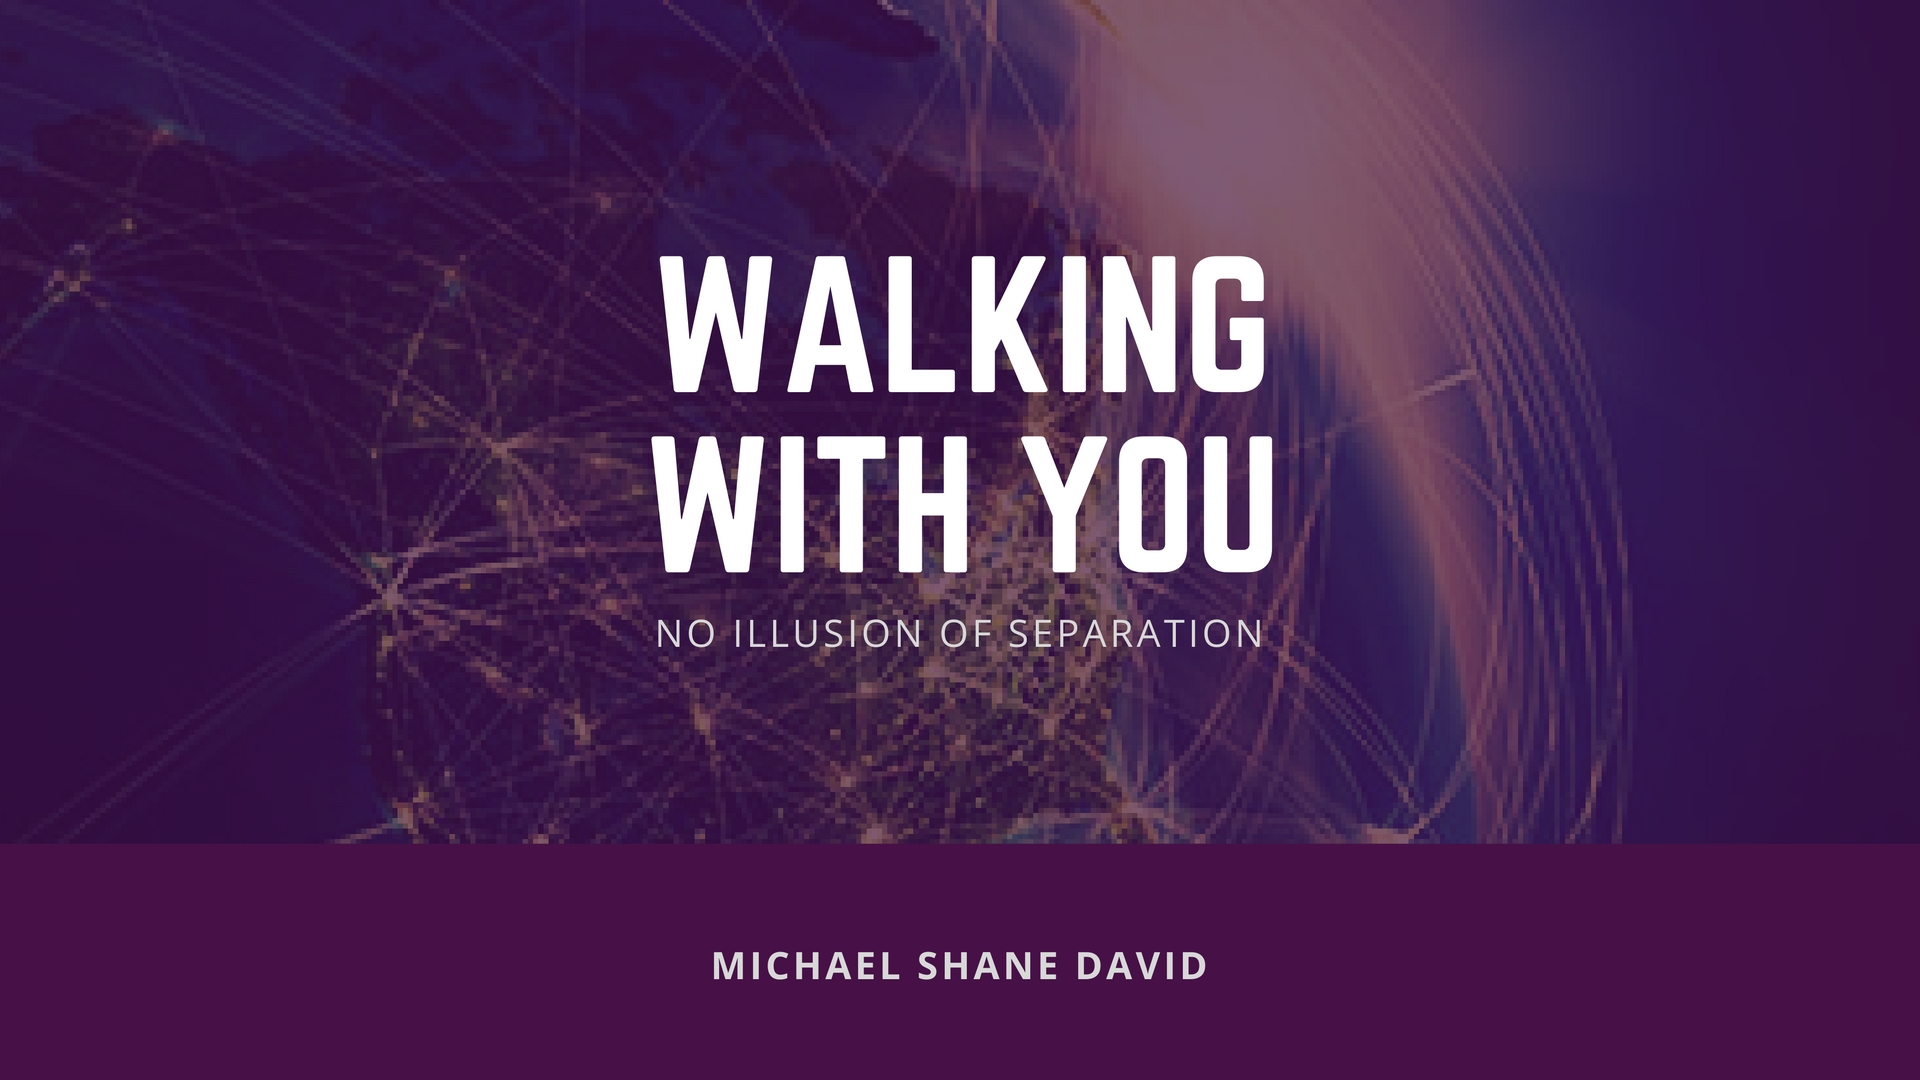 walking-with-you-michael-shane-david